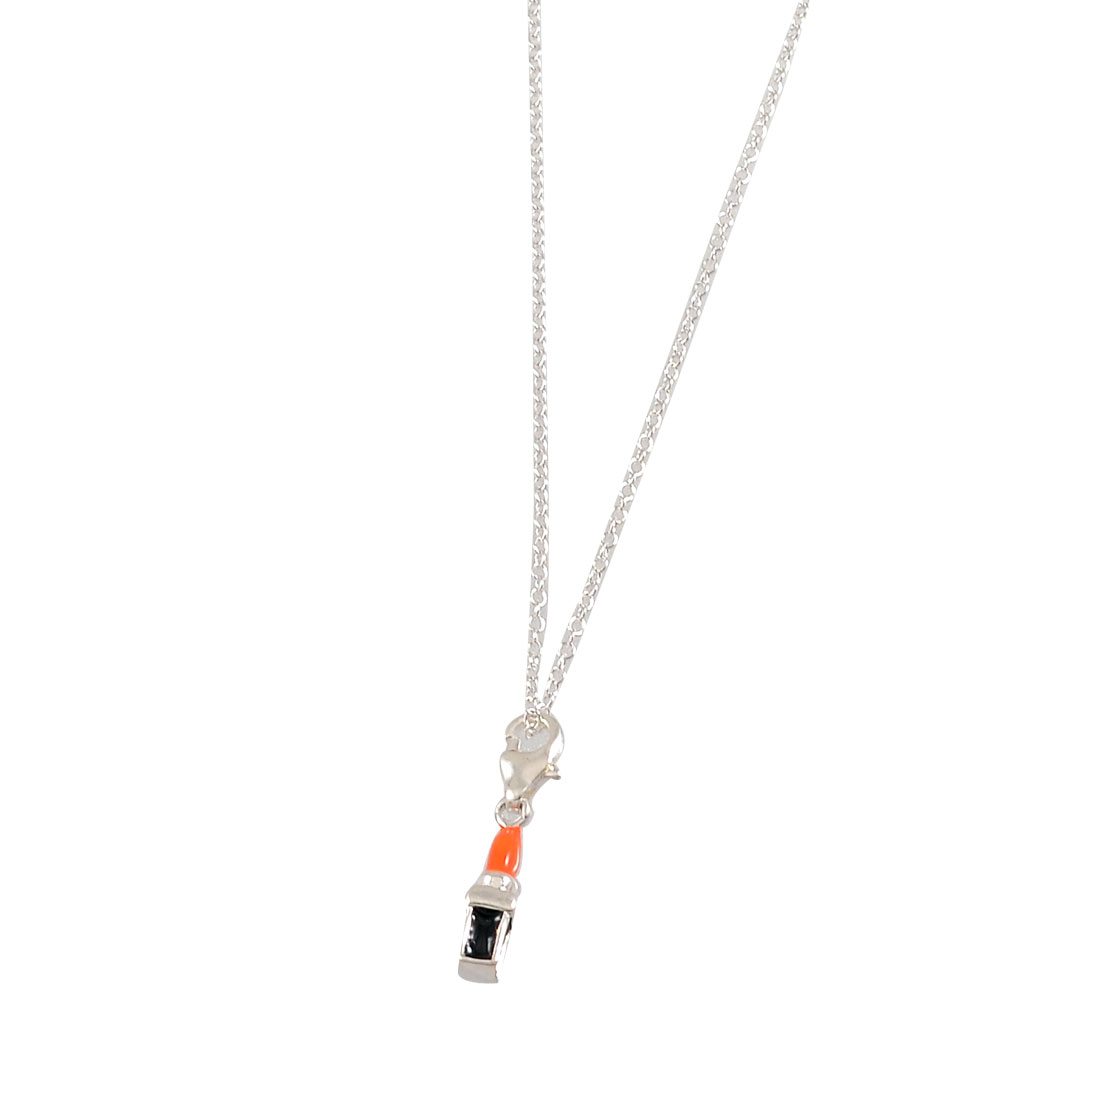 Silver Tone Metal Chain Black Orange Microphone Pendant Necklace for Girls